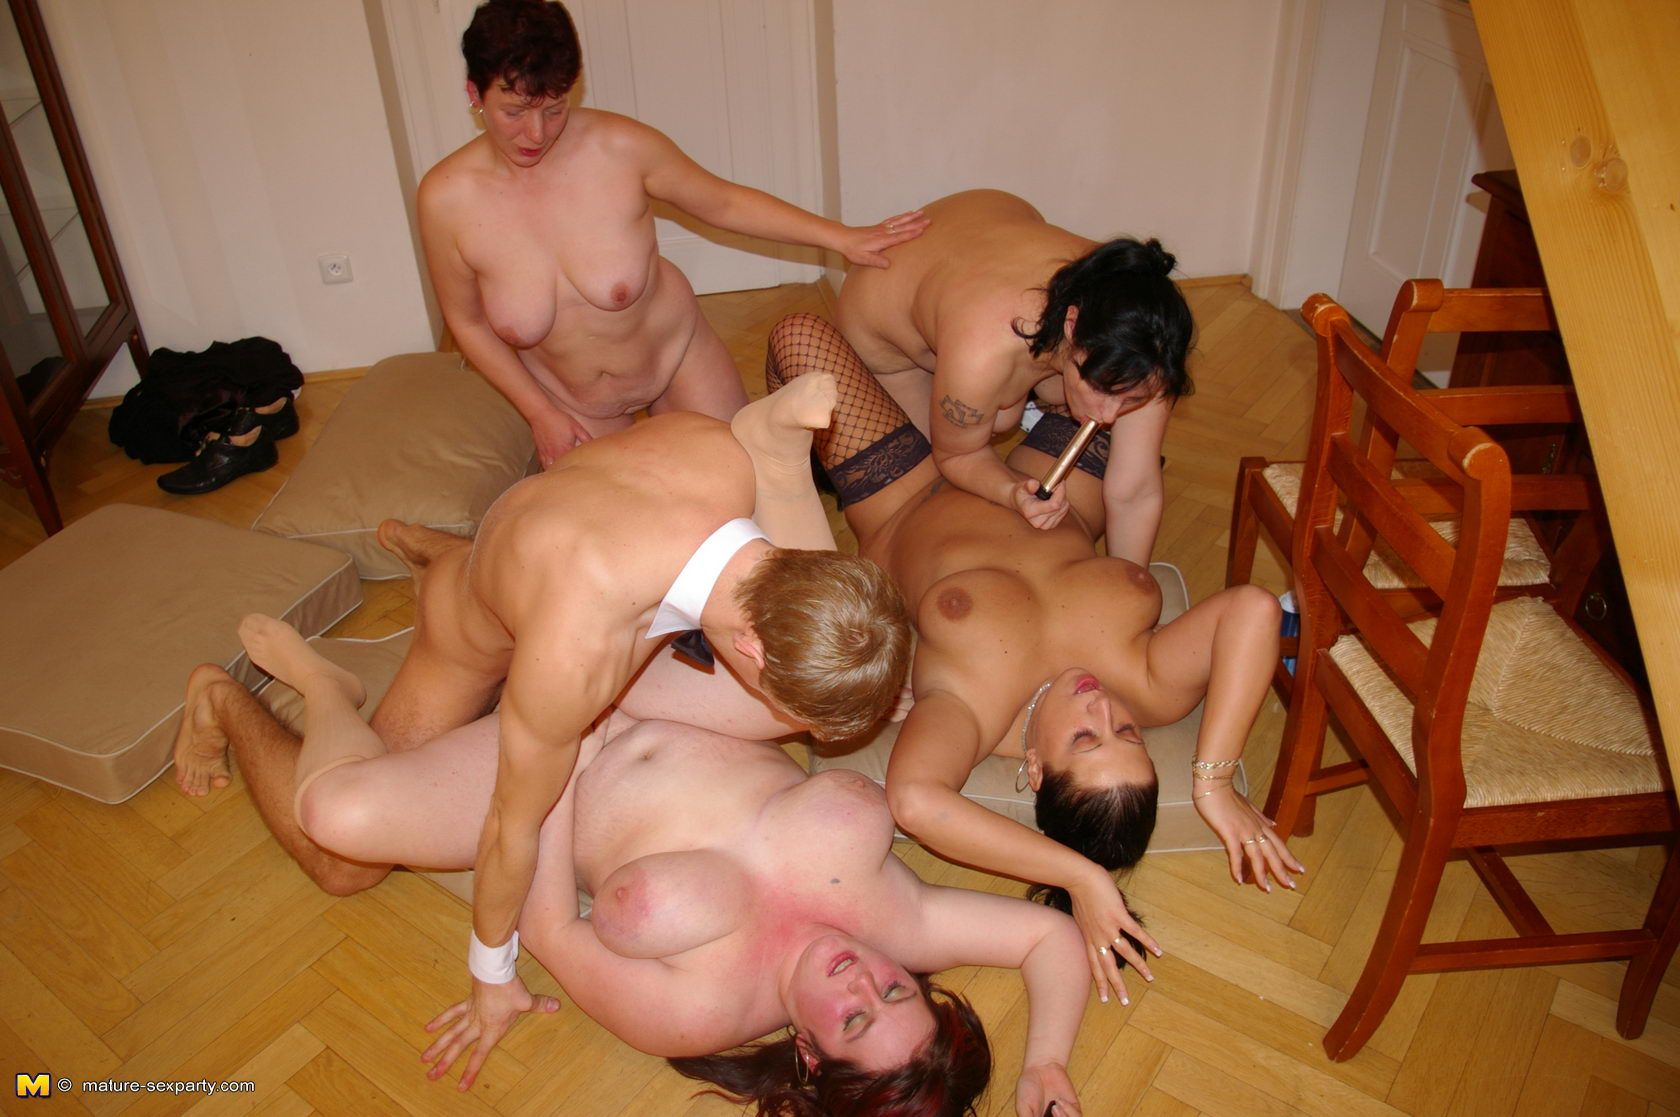 escortjente sex homoseksuell party